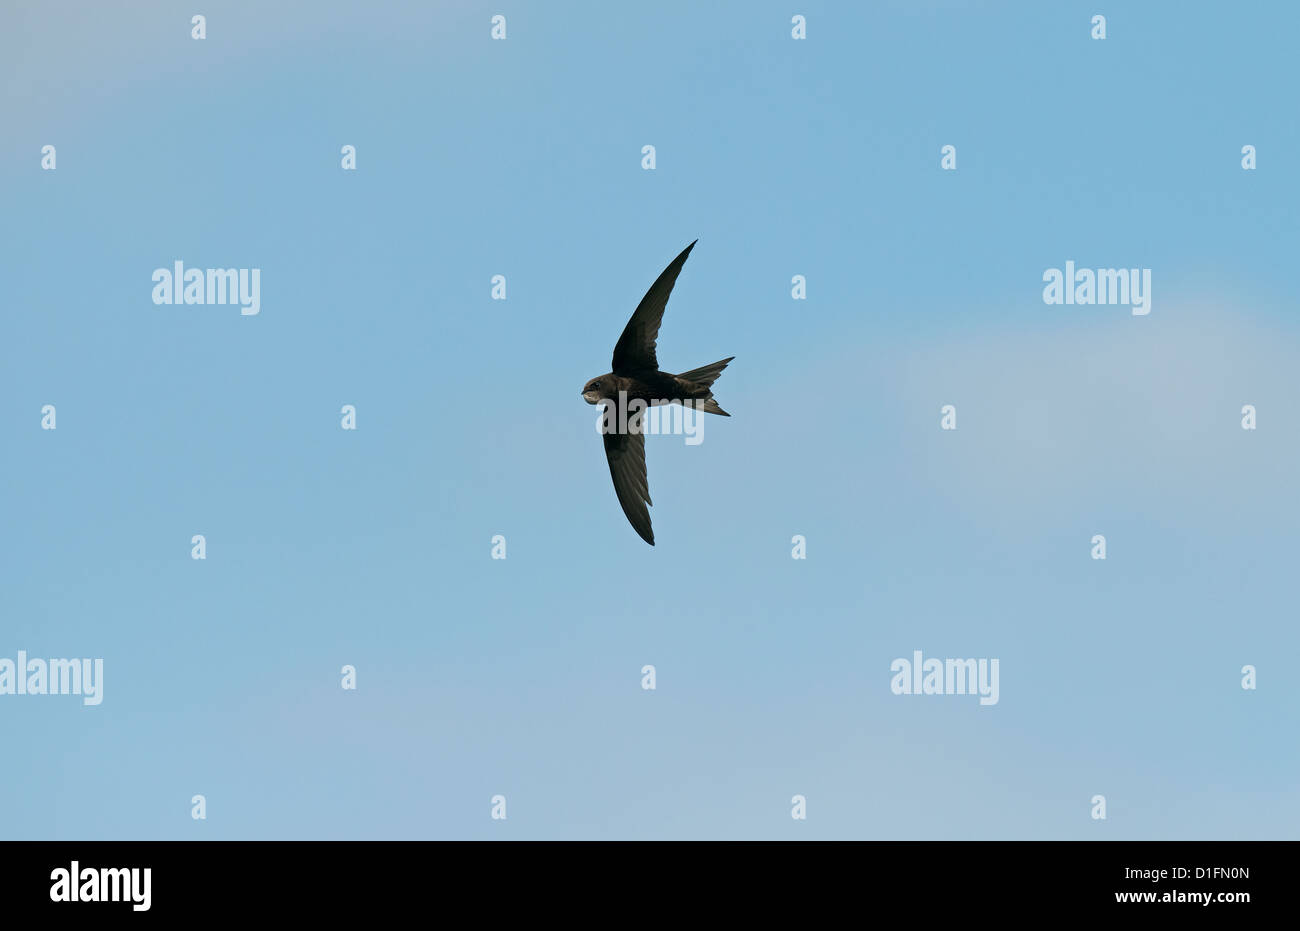 Common Swift in flight UK - Stock Image